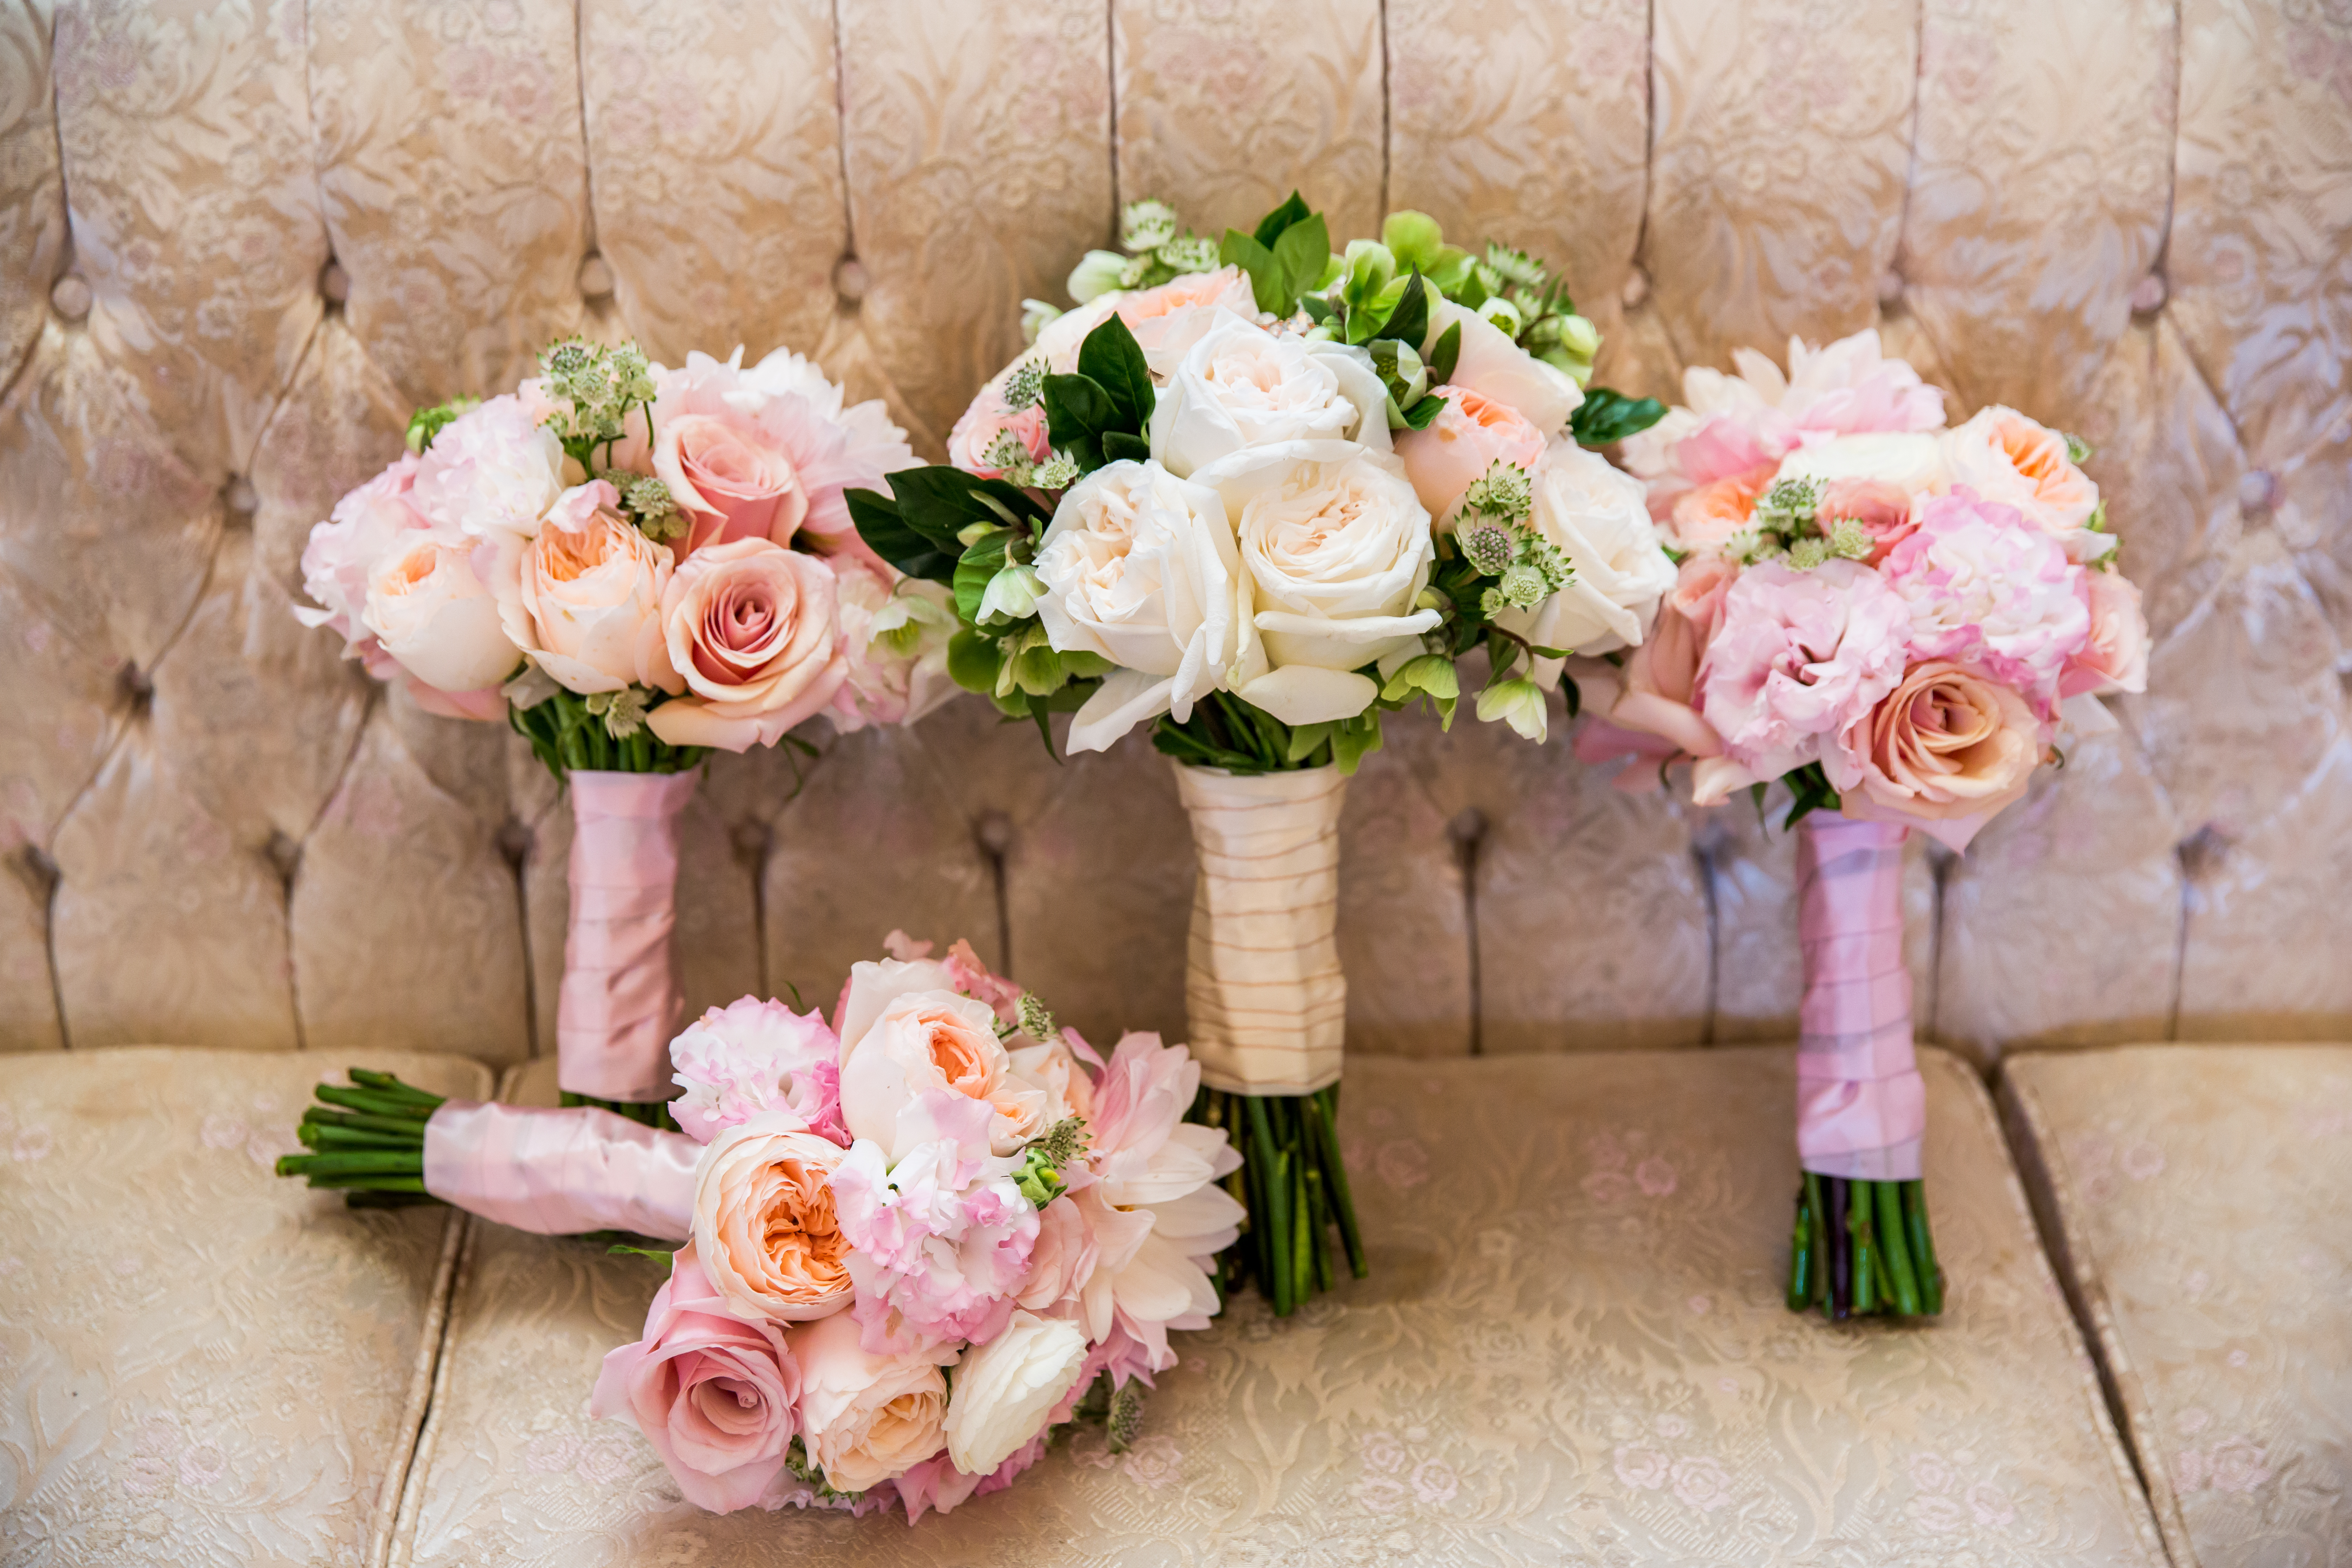 flowersbyazalea_Twin_Oaks_Garden_Estate_Romantic_Copper_Wedding_Blush_Pink_Bride_Bridesmaid_bouquet_